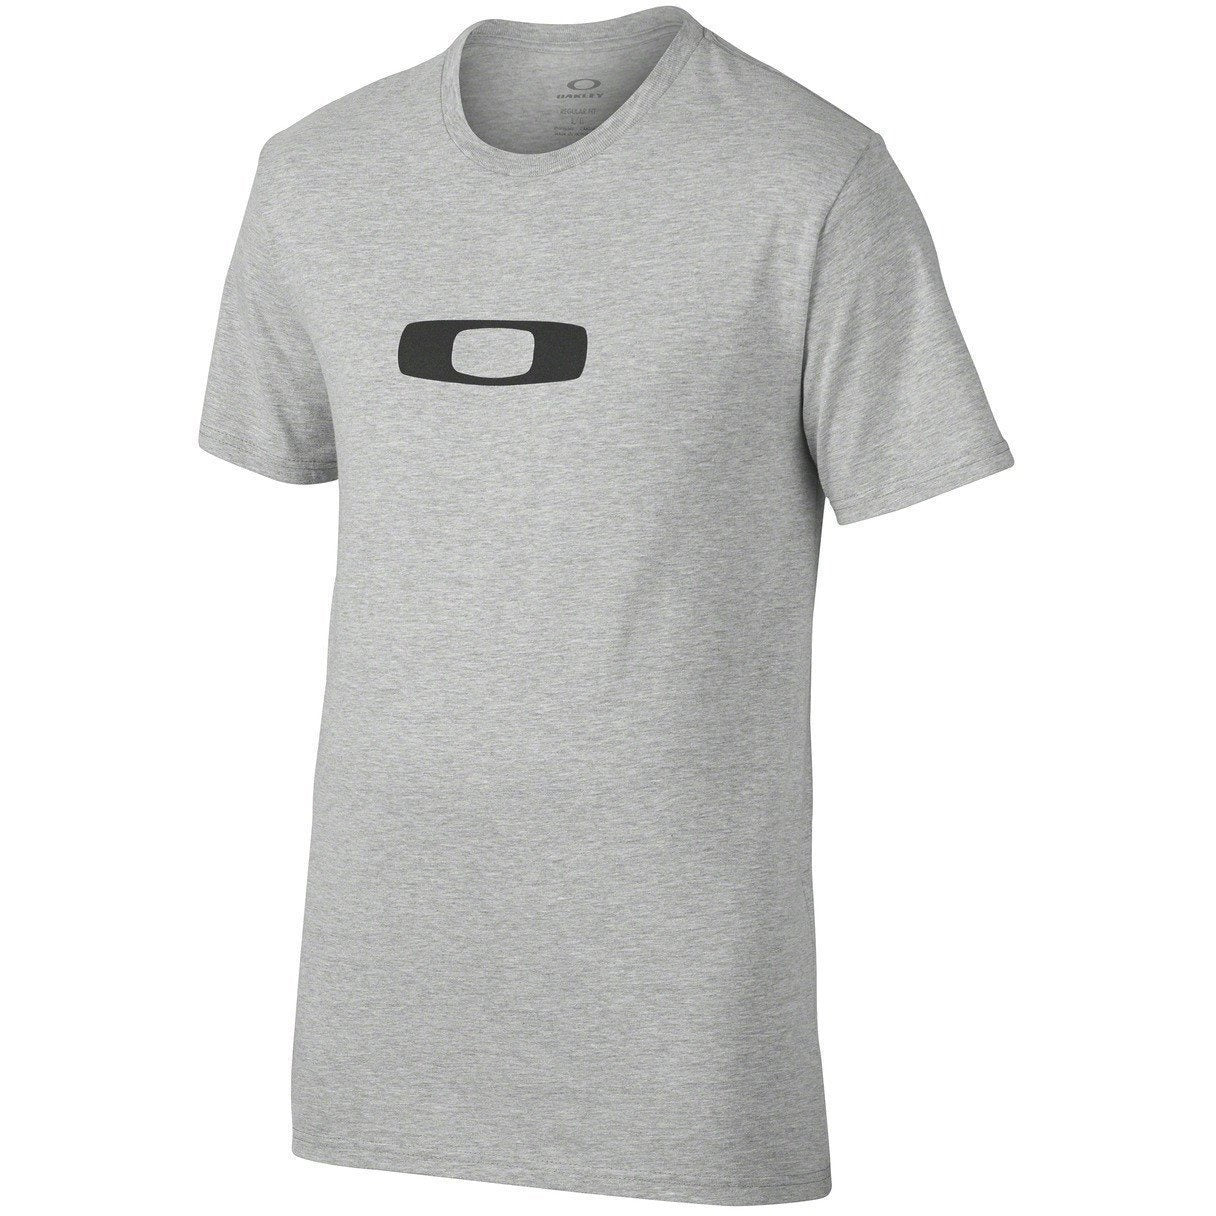 Oakley Square Me Tee Shirt - 88 Gear